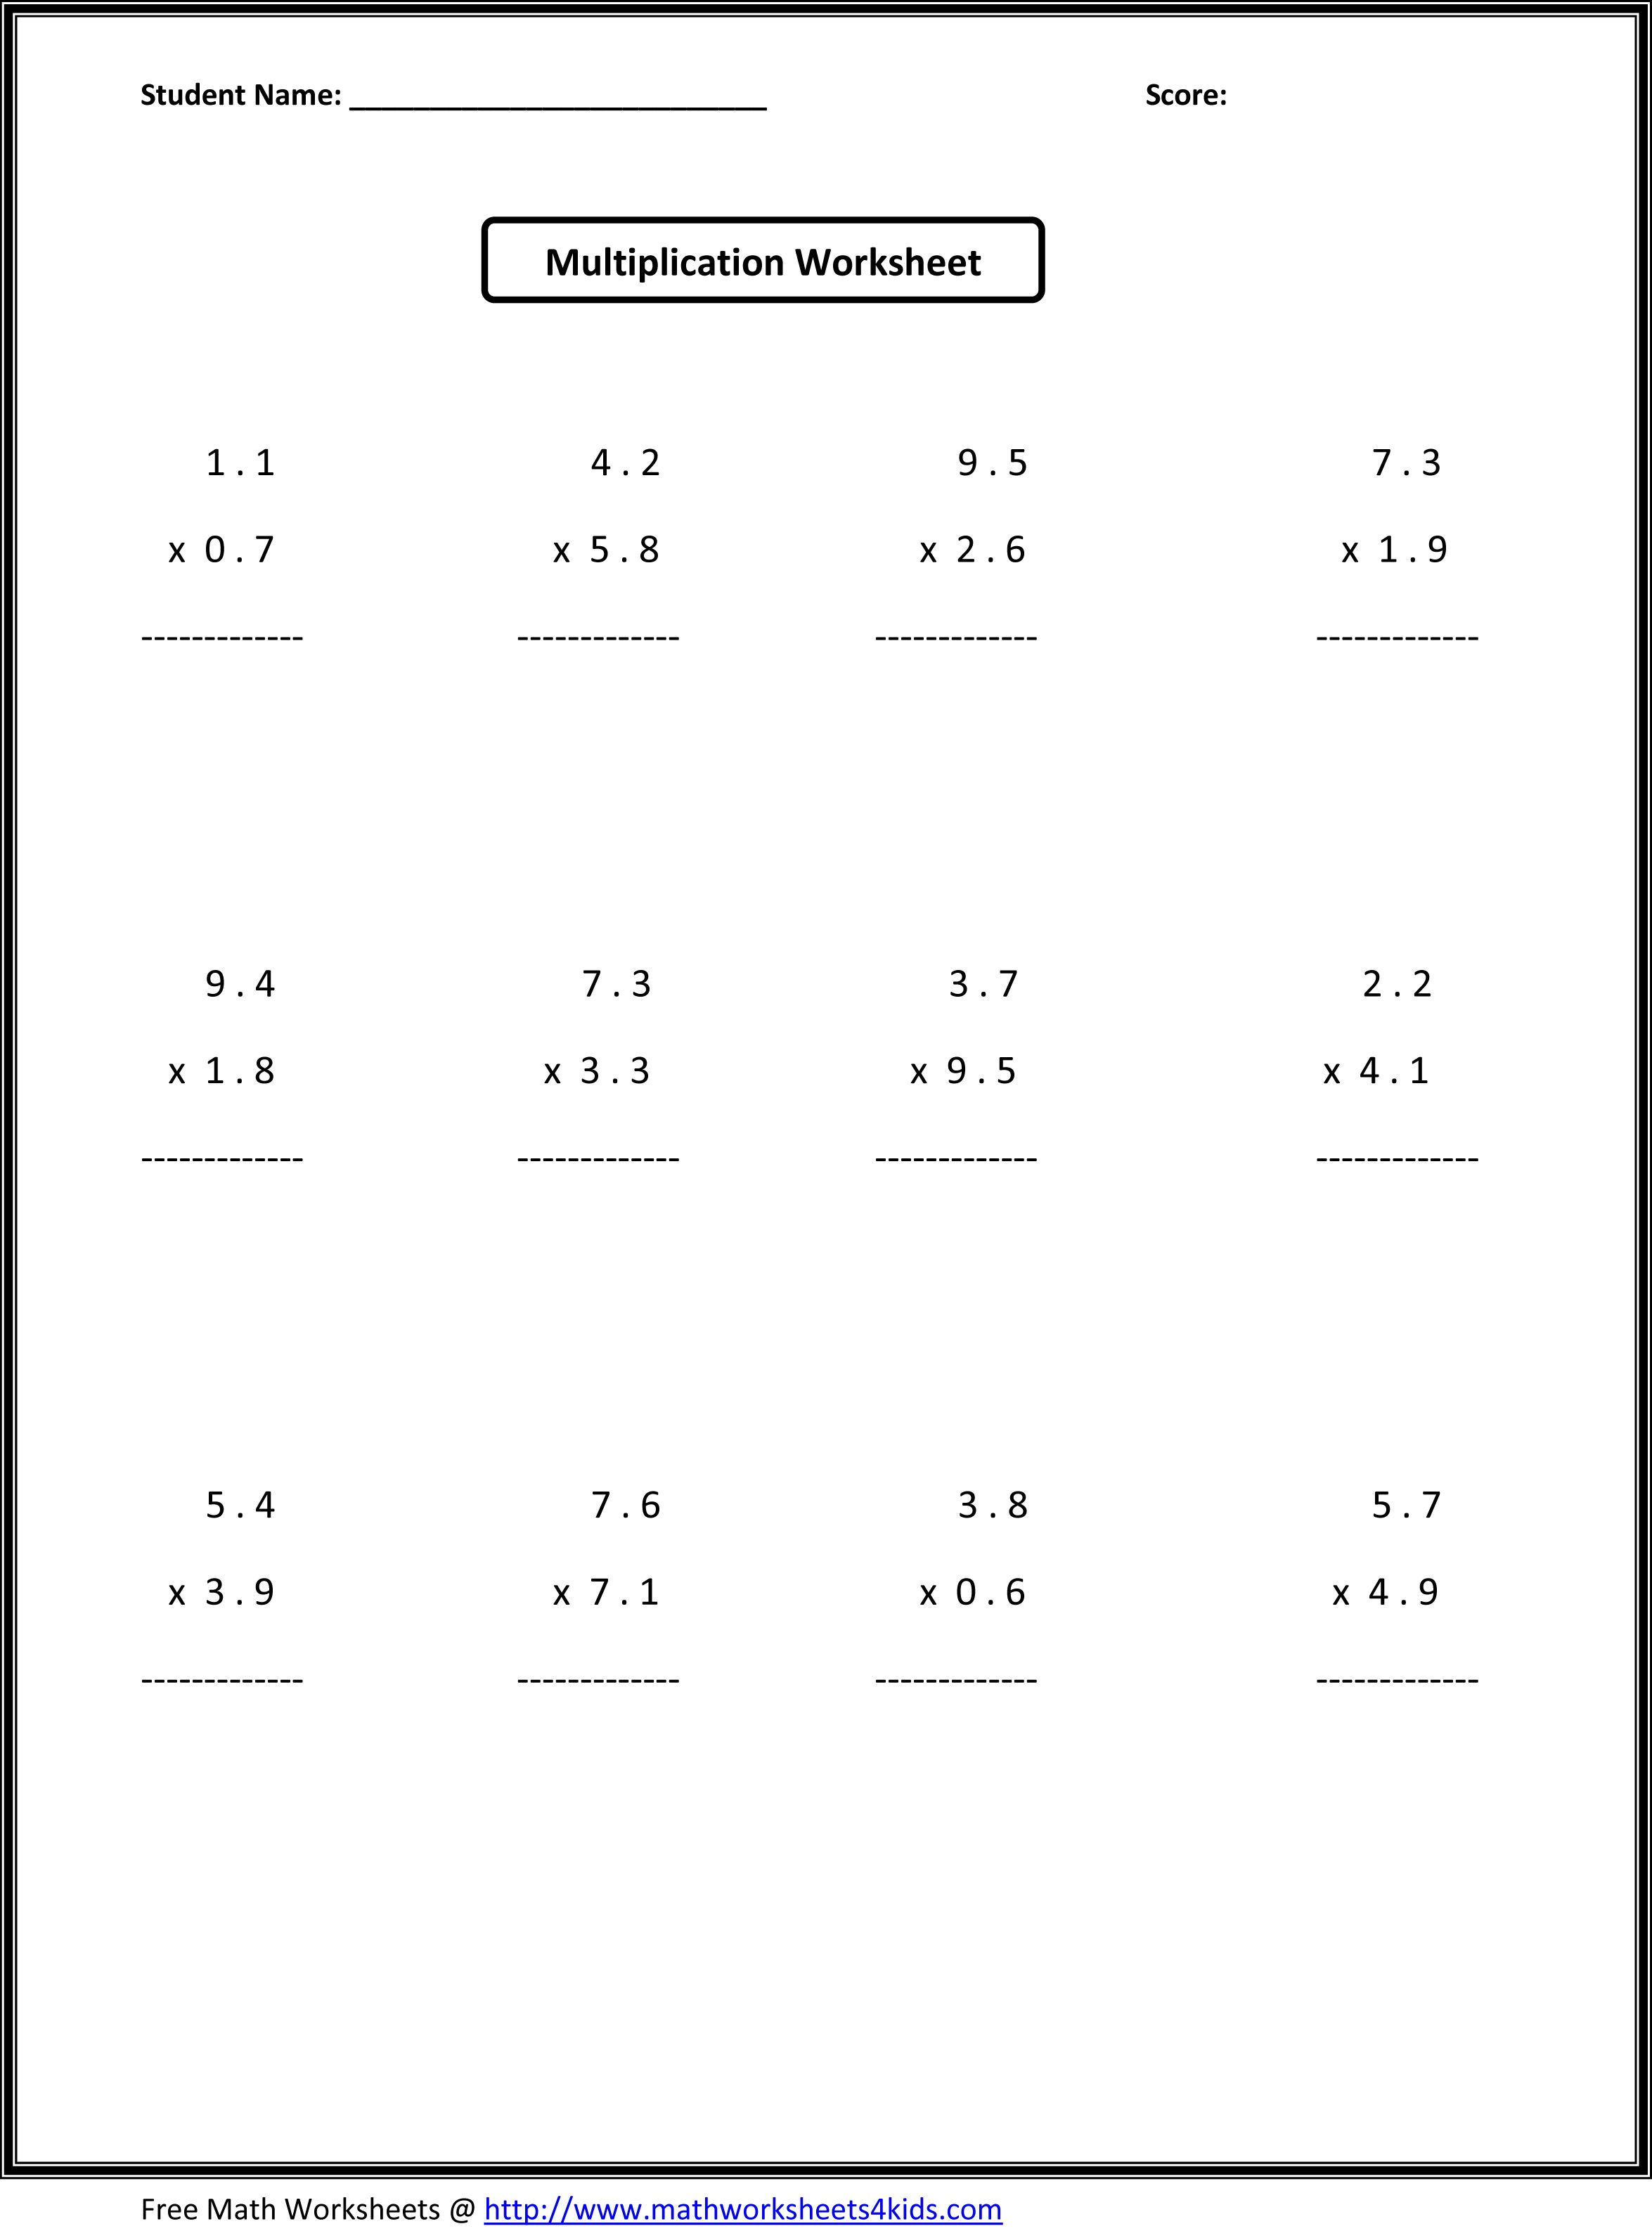 Worksheets Math Worksheets For Sixth Grade math decimals worksheets riddles 4th 5th 6th 7th grade sixth have ratio multiplying and dividing fractions algebraic expressions equations inequalities geom